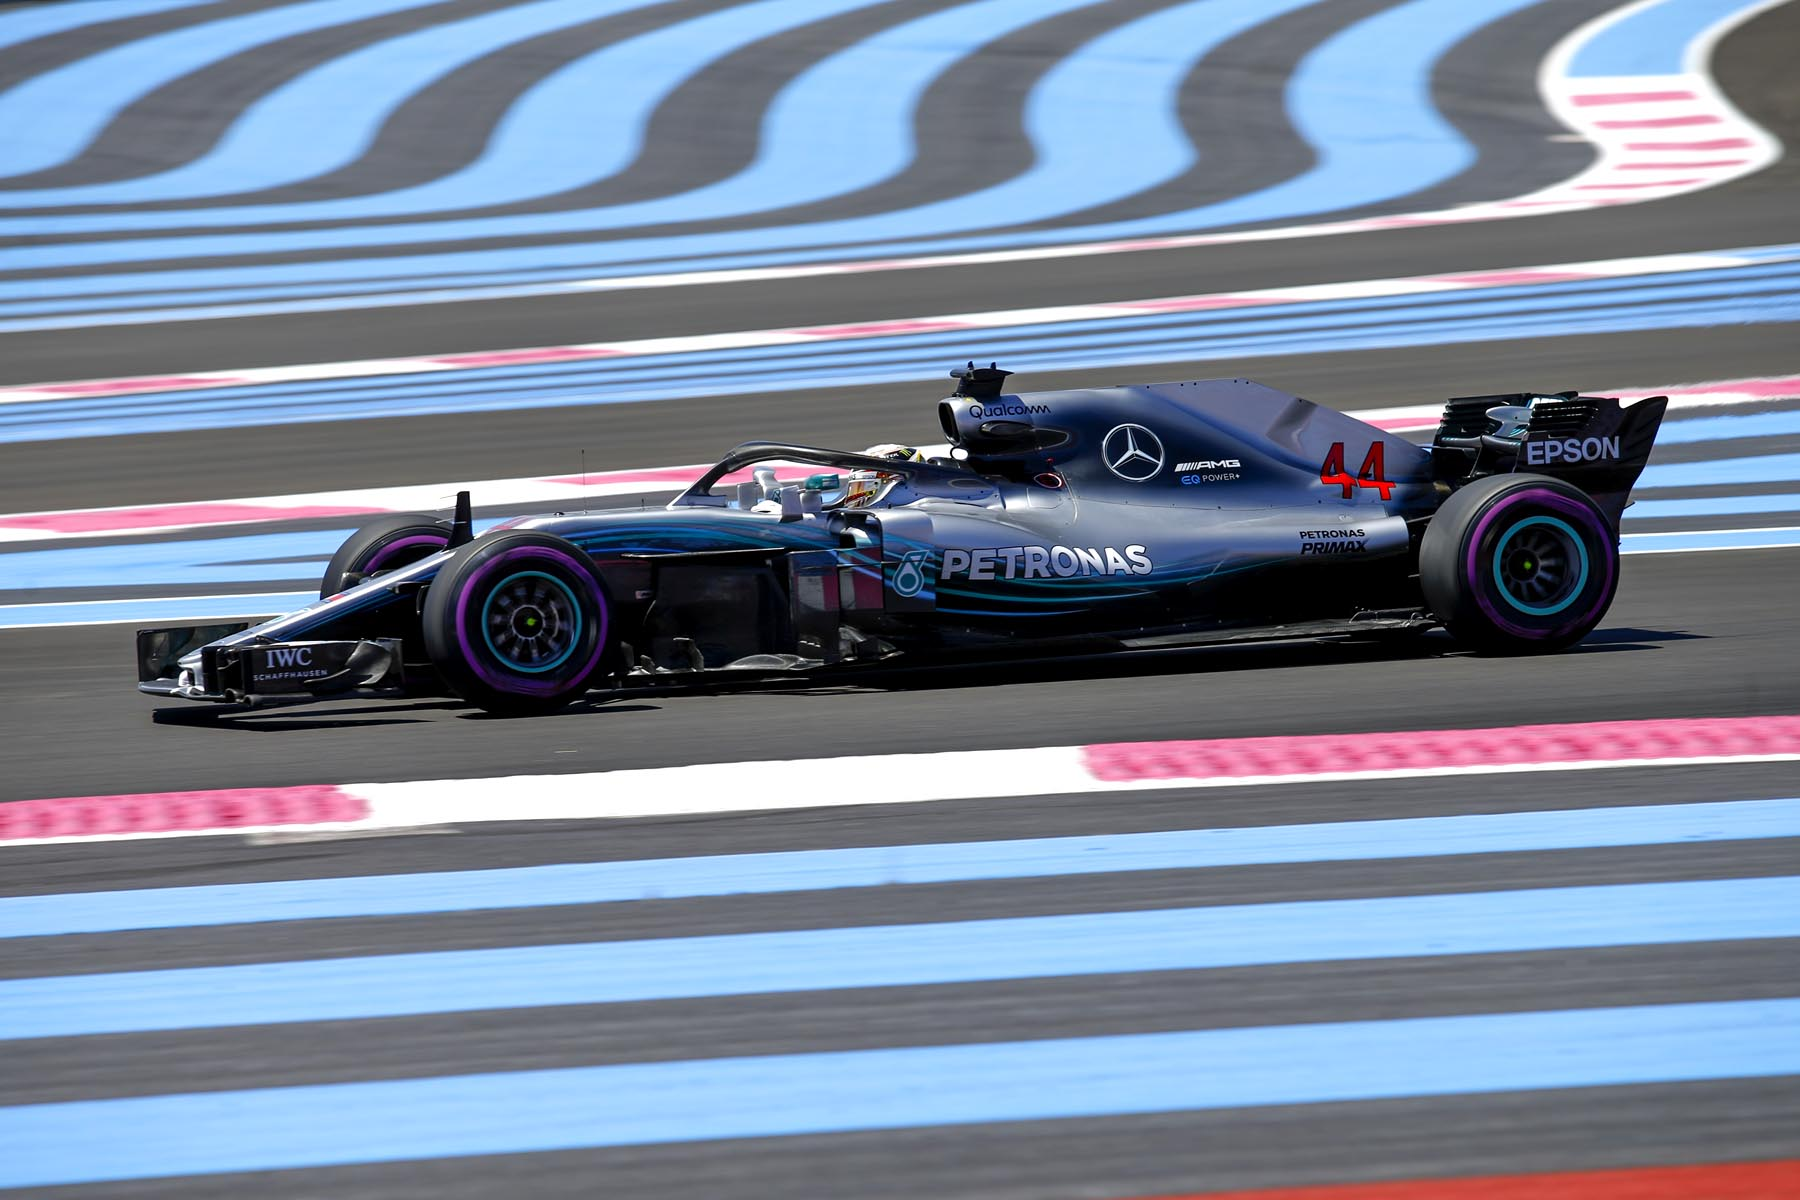 Lewis Hamilton on track at the 2018 French Grand Prix.